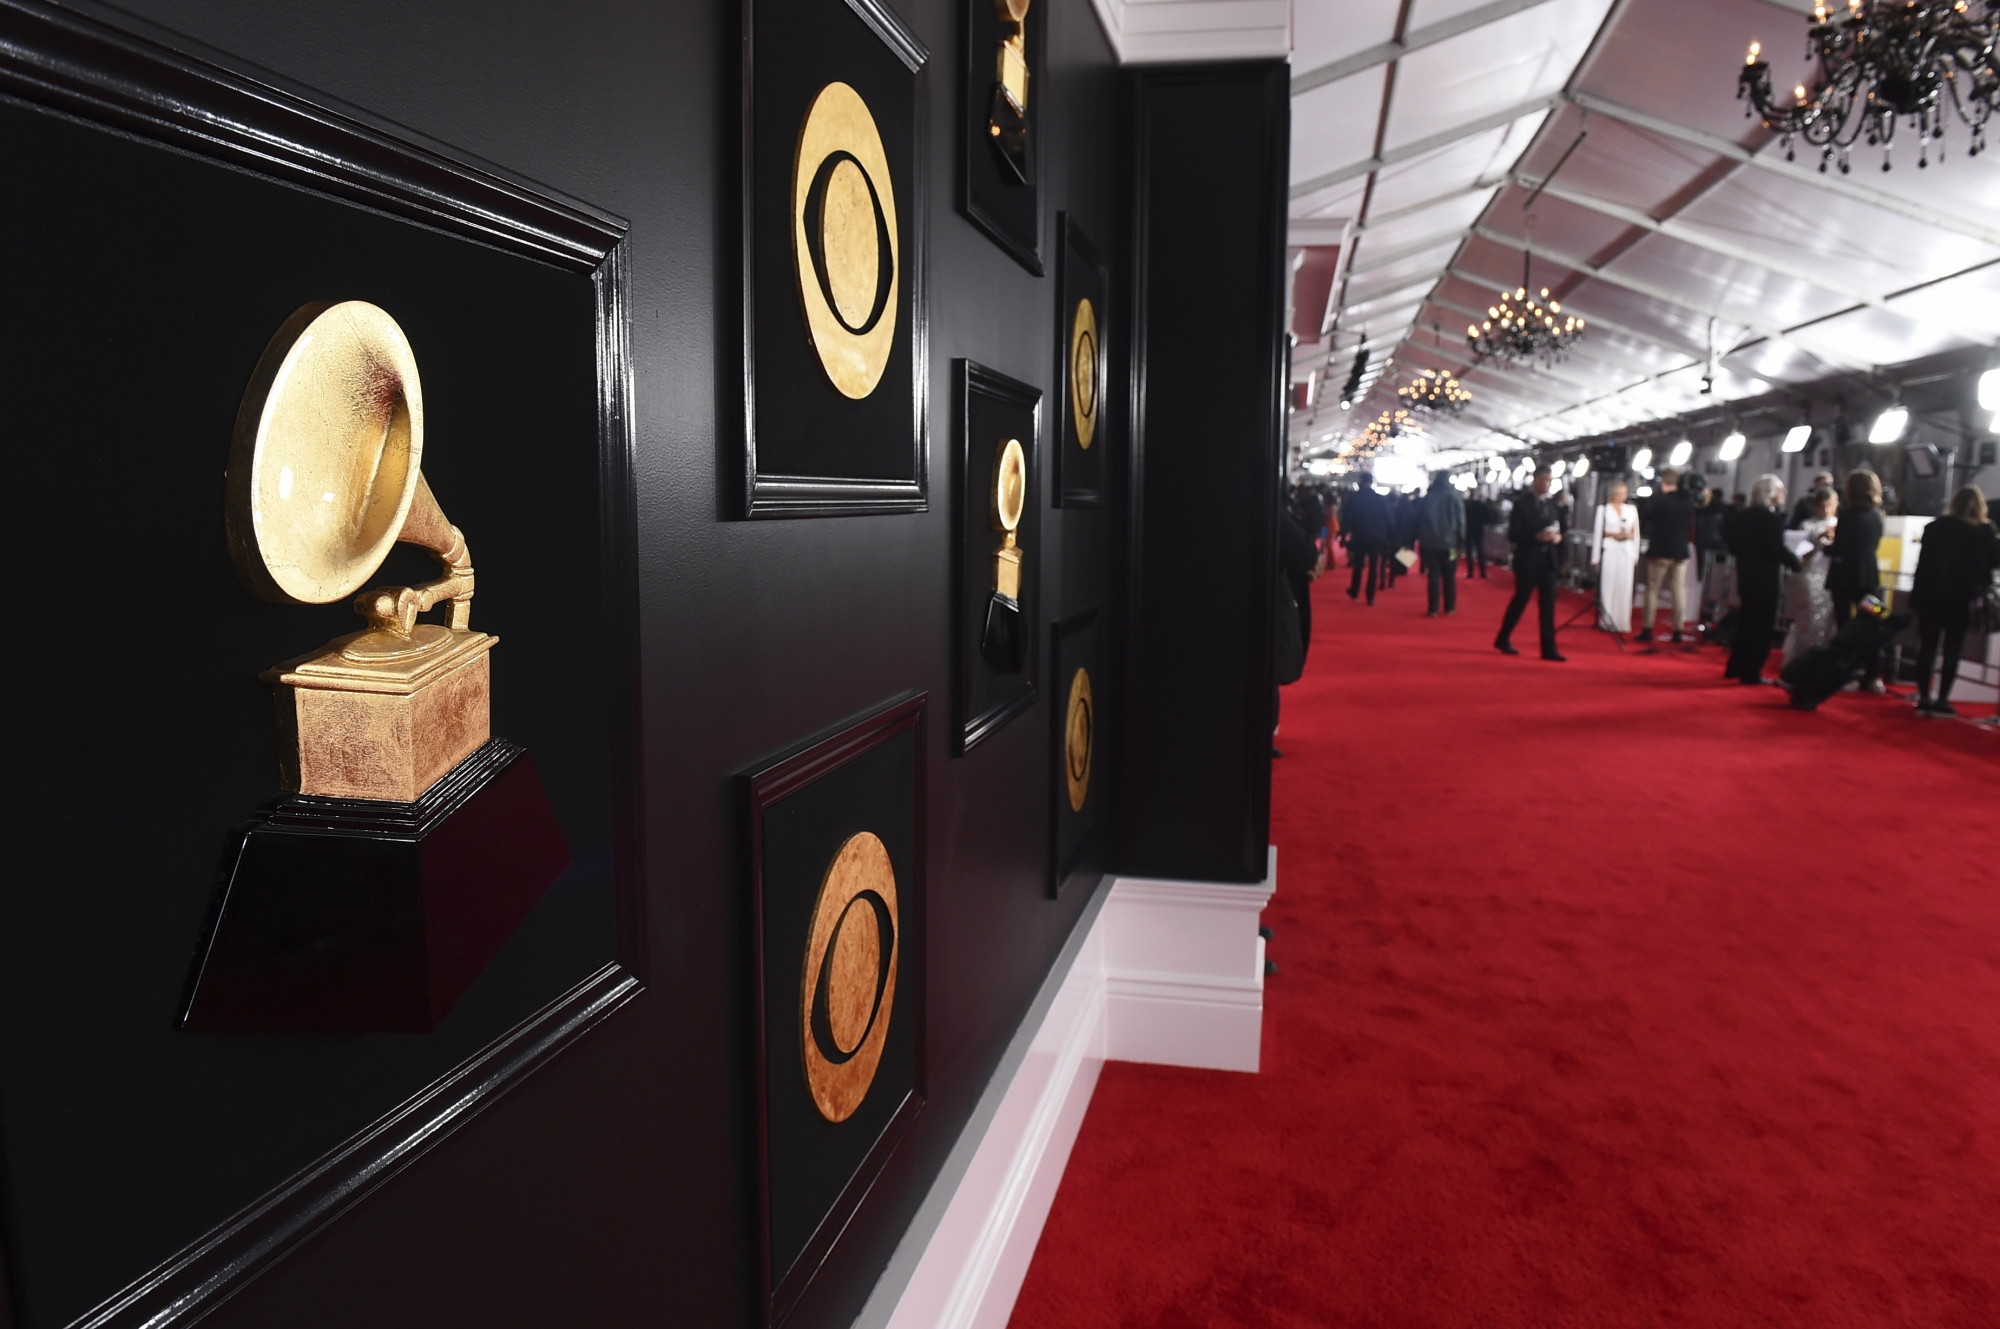 Grammy Awards 2019 Live: The Latest: Collaborators: No Word From Glover On Grammys